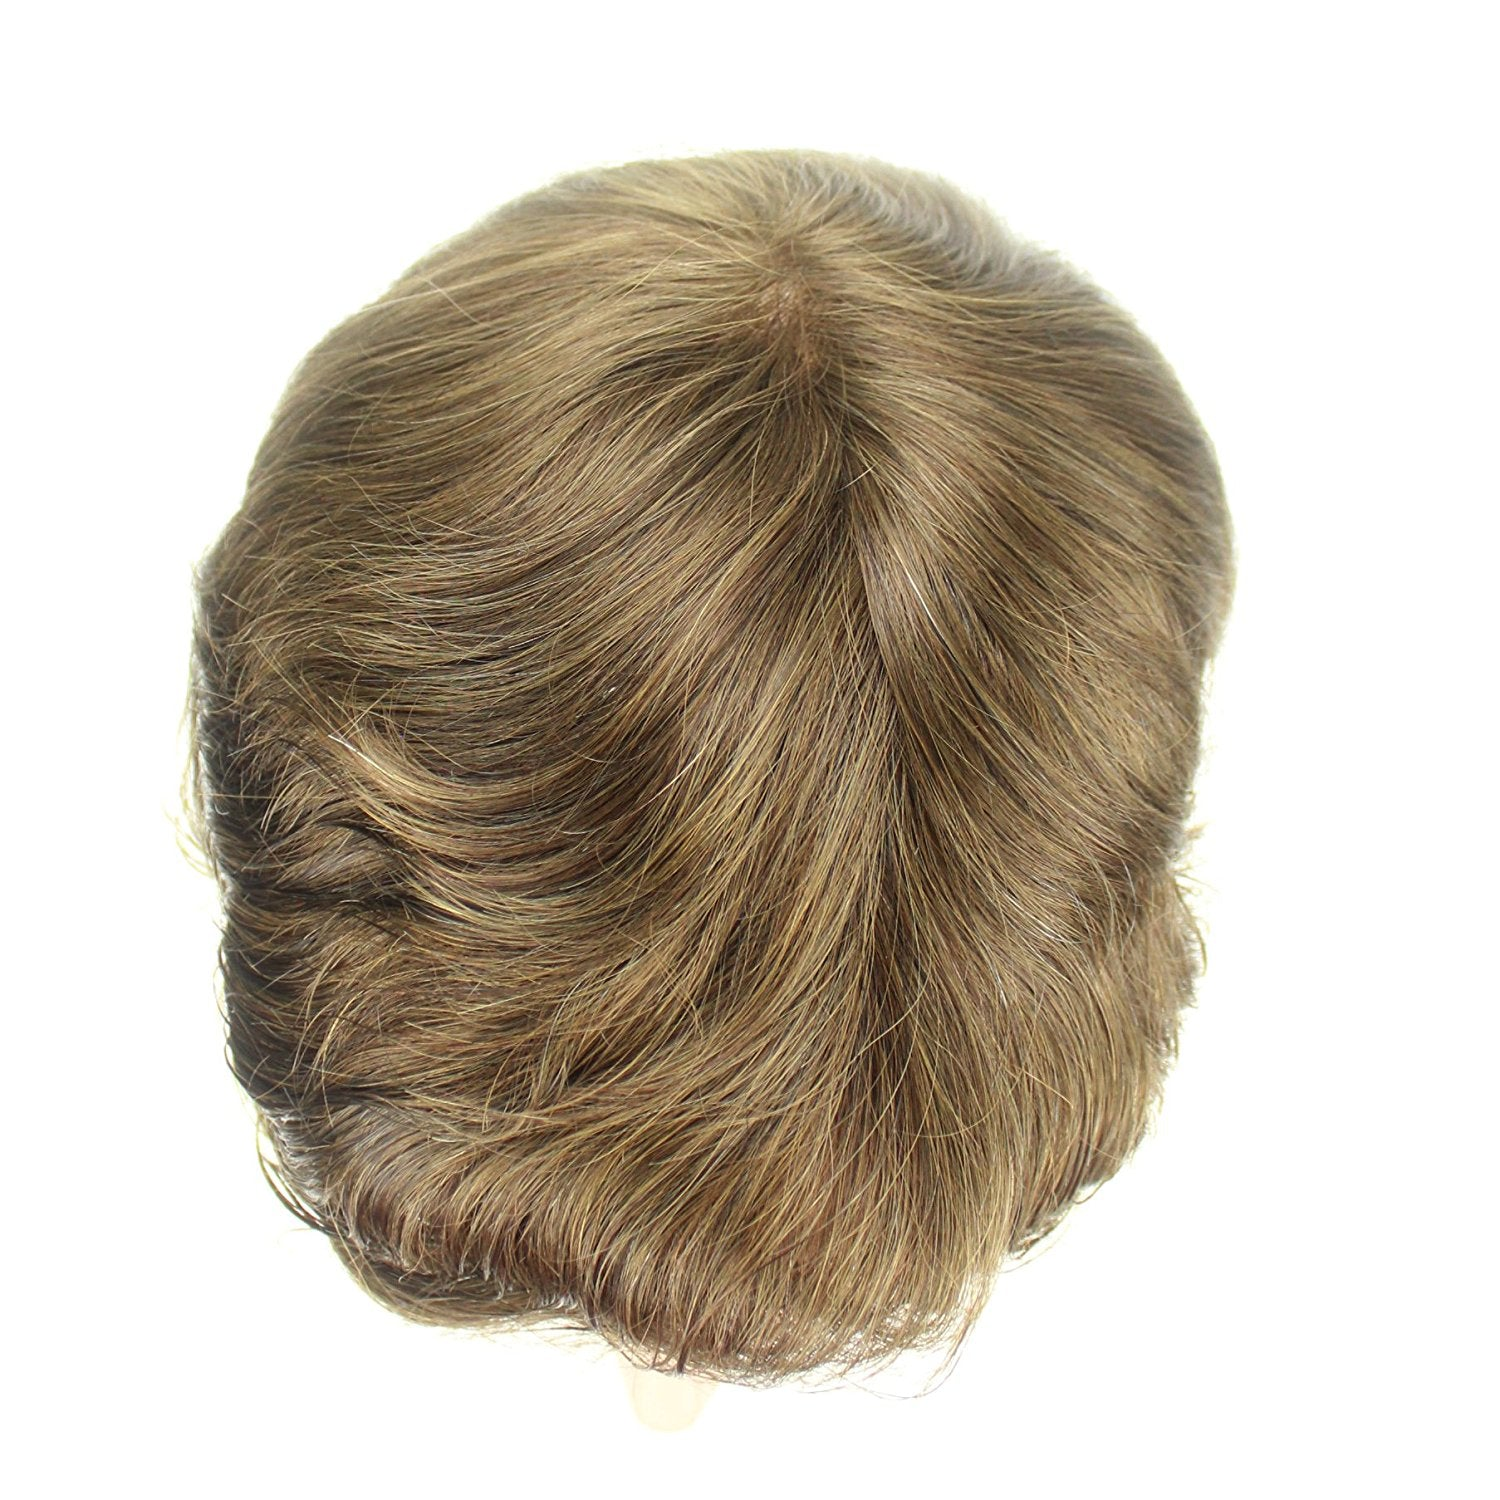 mens-curly-hair-wig-brown-blonde-remy-hair